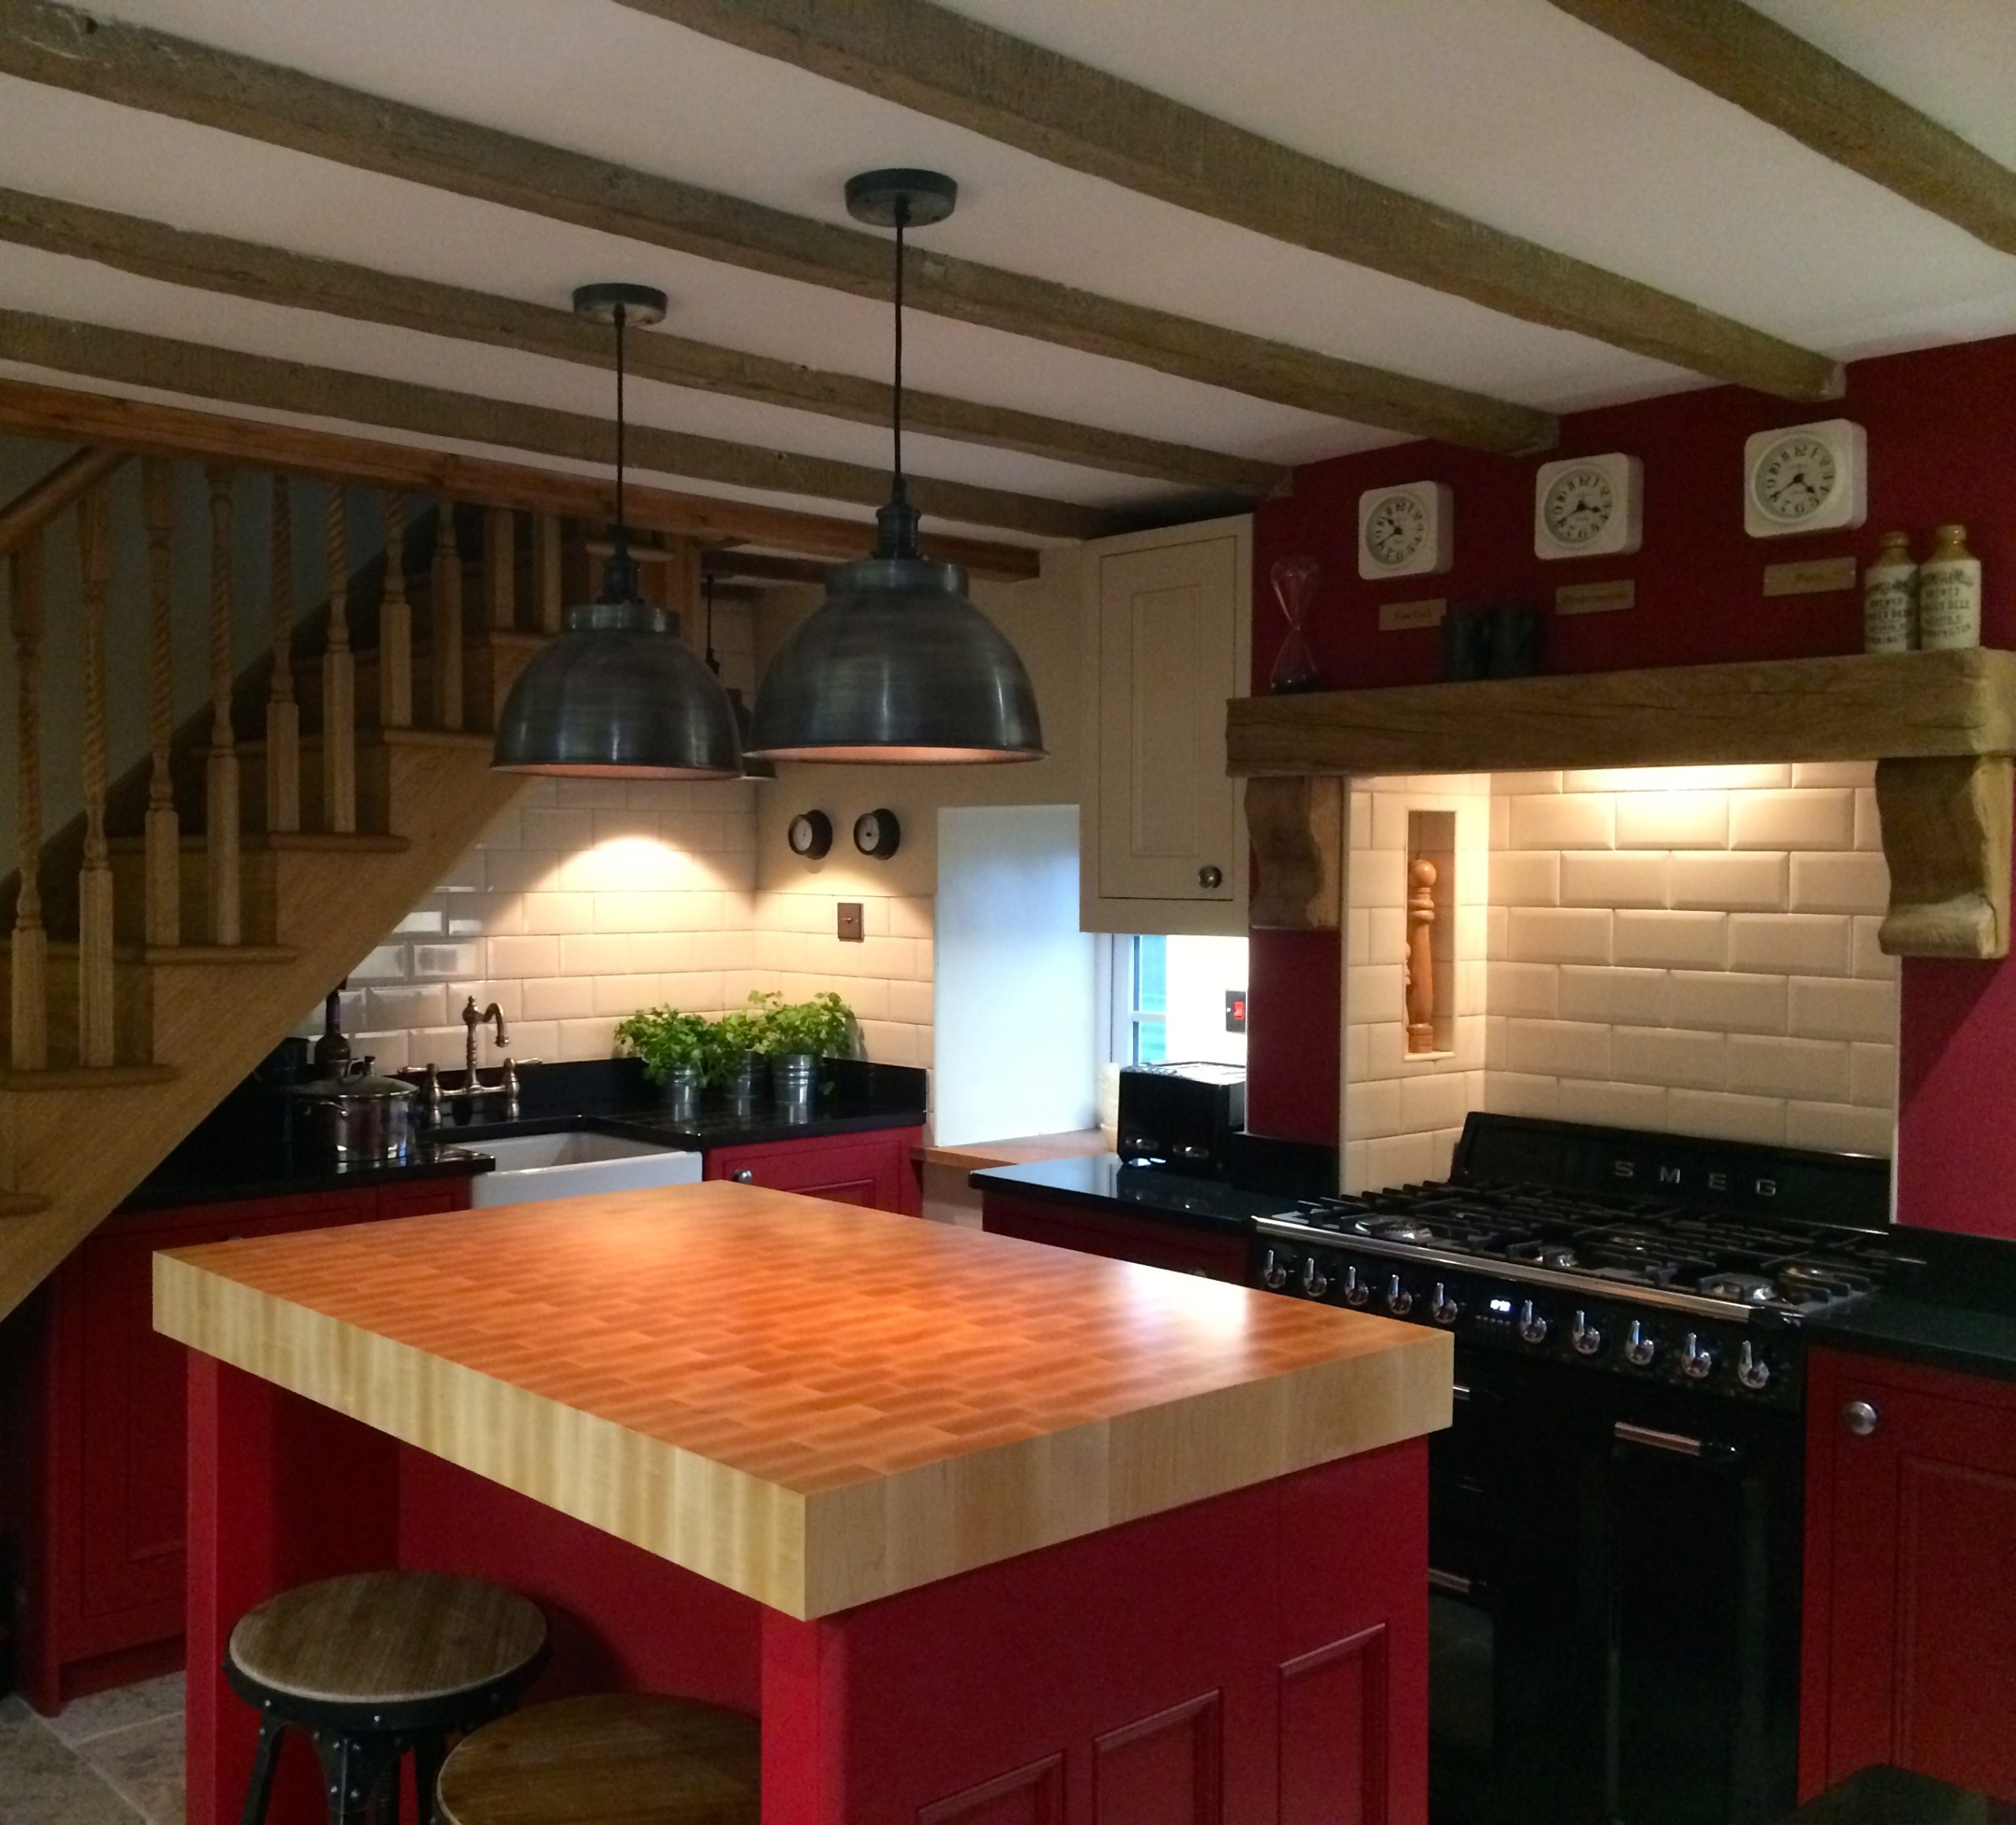 1909 kitchen in rectory red and ringwood ground by Amelia Wilson Interiors Ltd